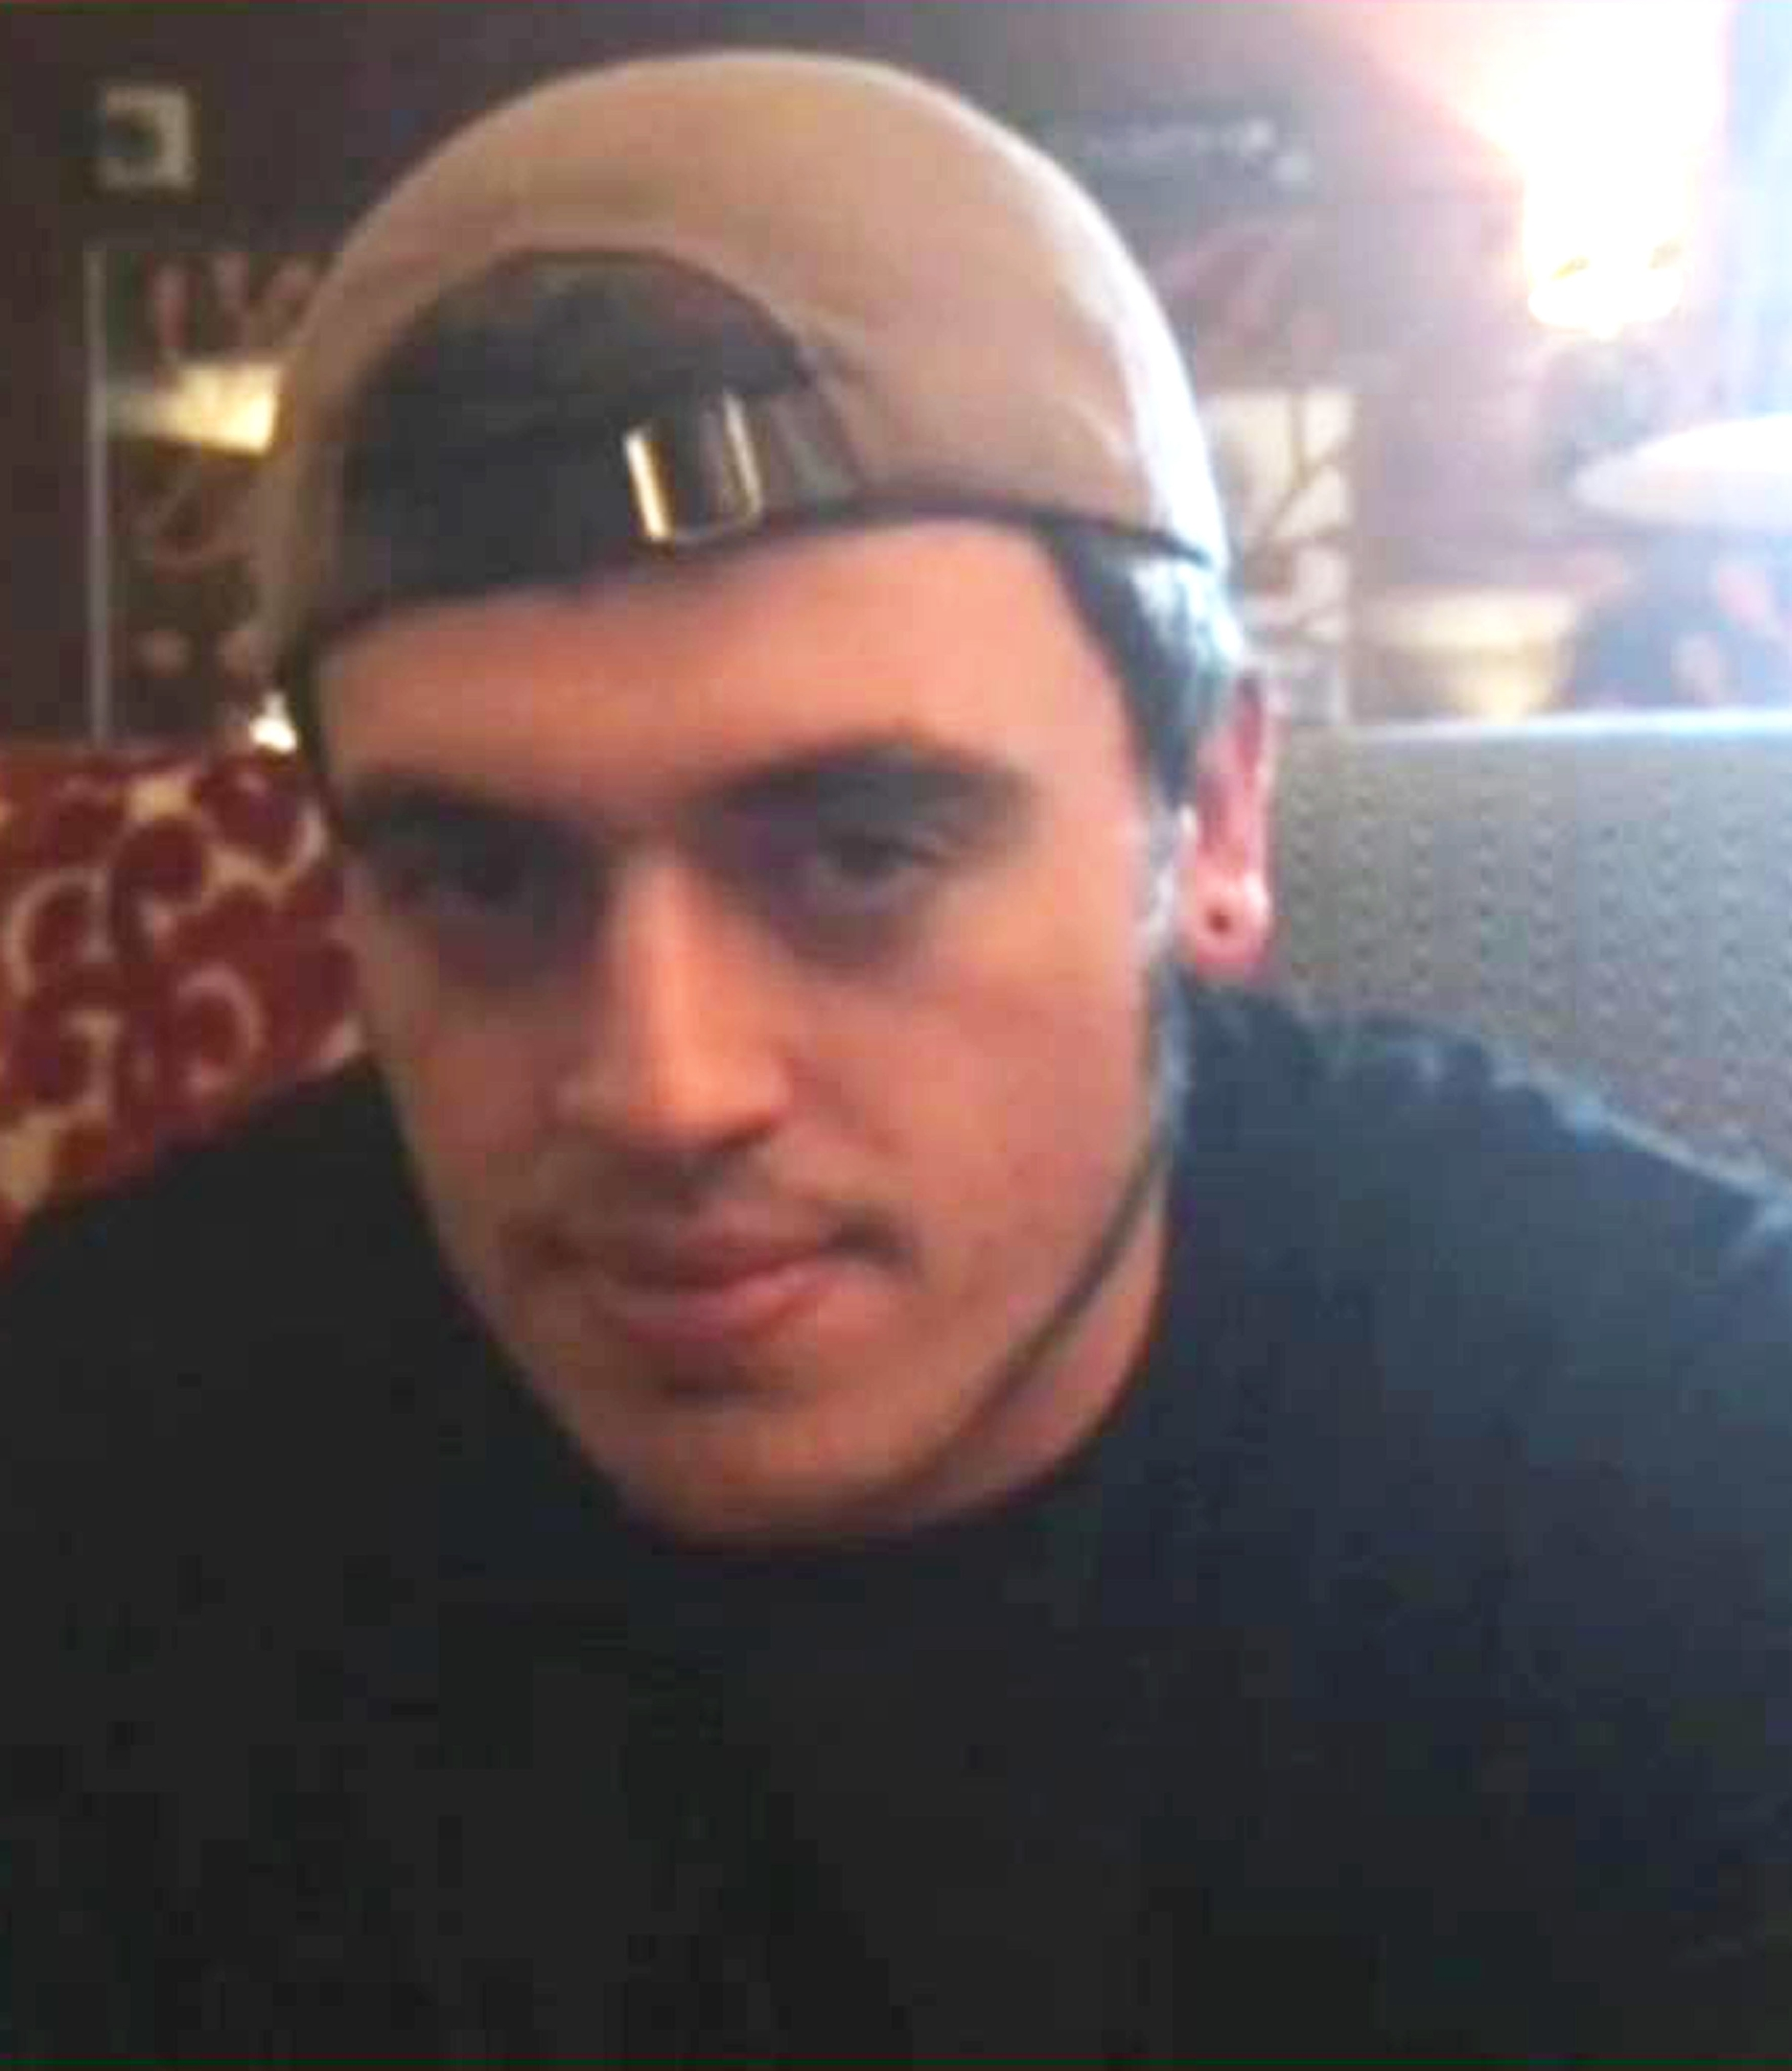 Jed Allen, 21, who is being sought by police